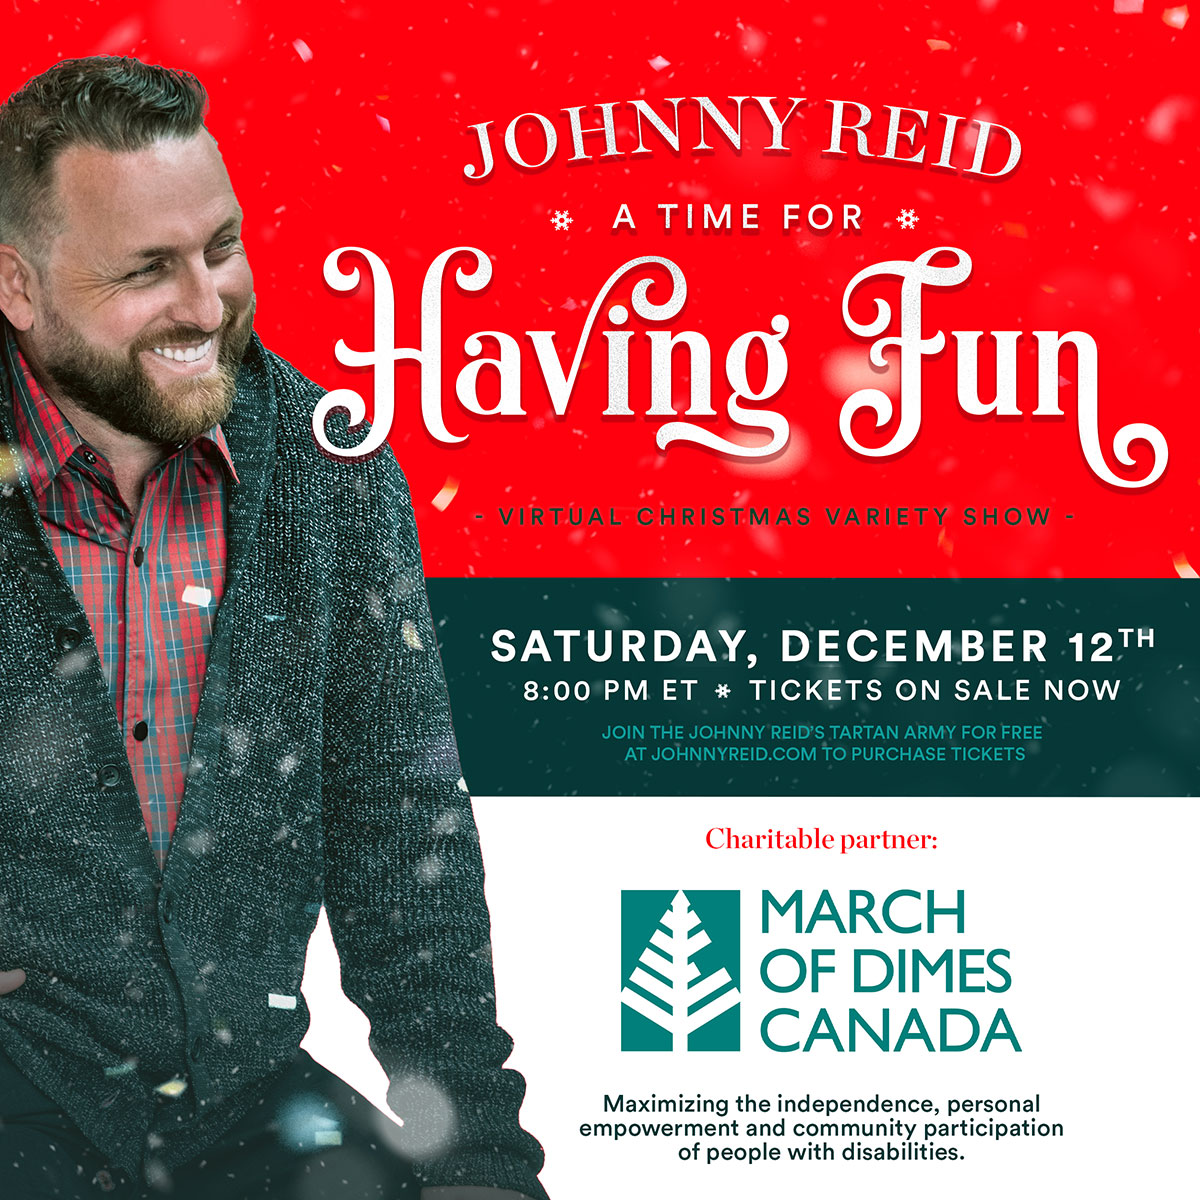 March of Dimes Canada Announced as Charitable Partner for Johnny Reids A Time For Having Fun Virtual Christmas Variety Show